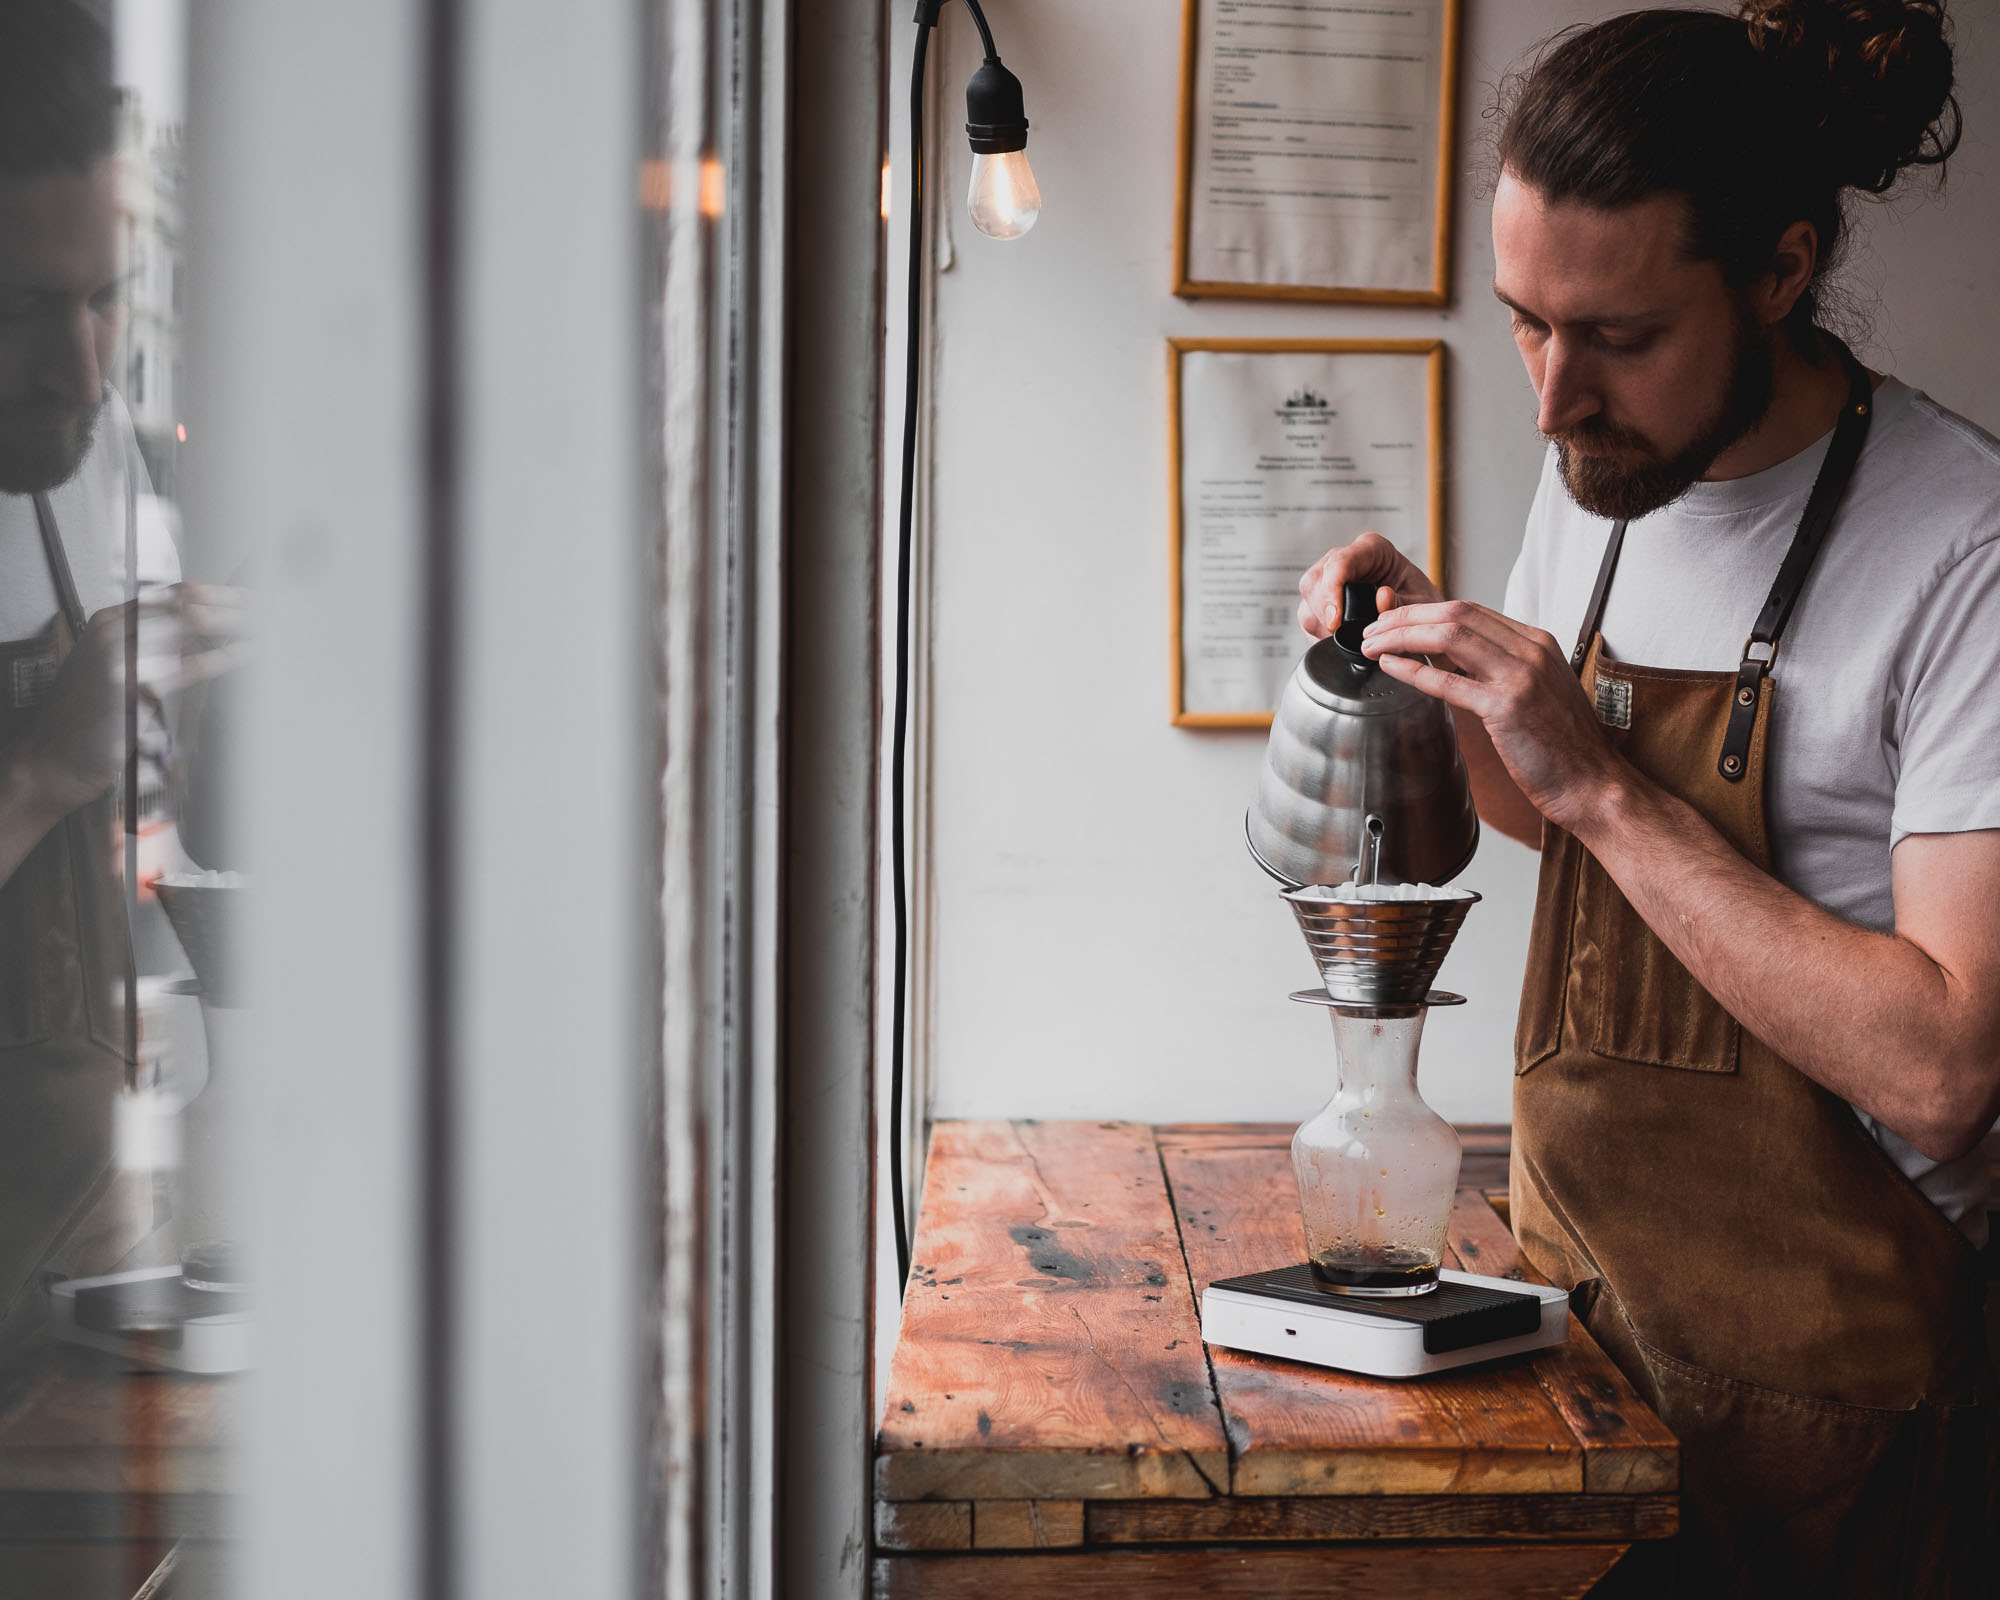 chris, campbell, brewed, brighton, roasters, coffee, roasting, horsham, coffee, roaster, bond, street, st, lewes, road, coffee, at, 33, brighton, hove, speciality, coffee, interview, barista, profile, interview, question, and, answer, q&a, artisan, local, independent,